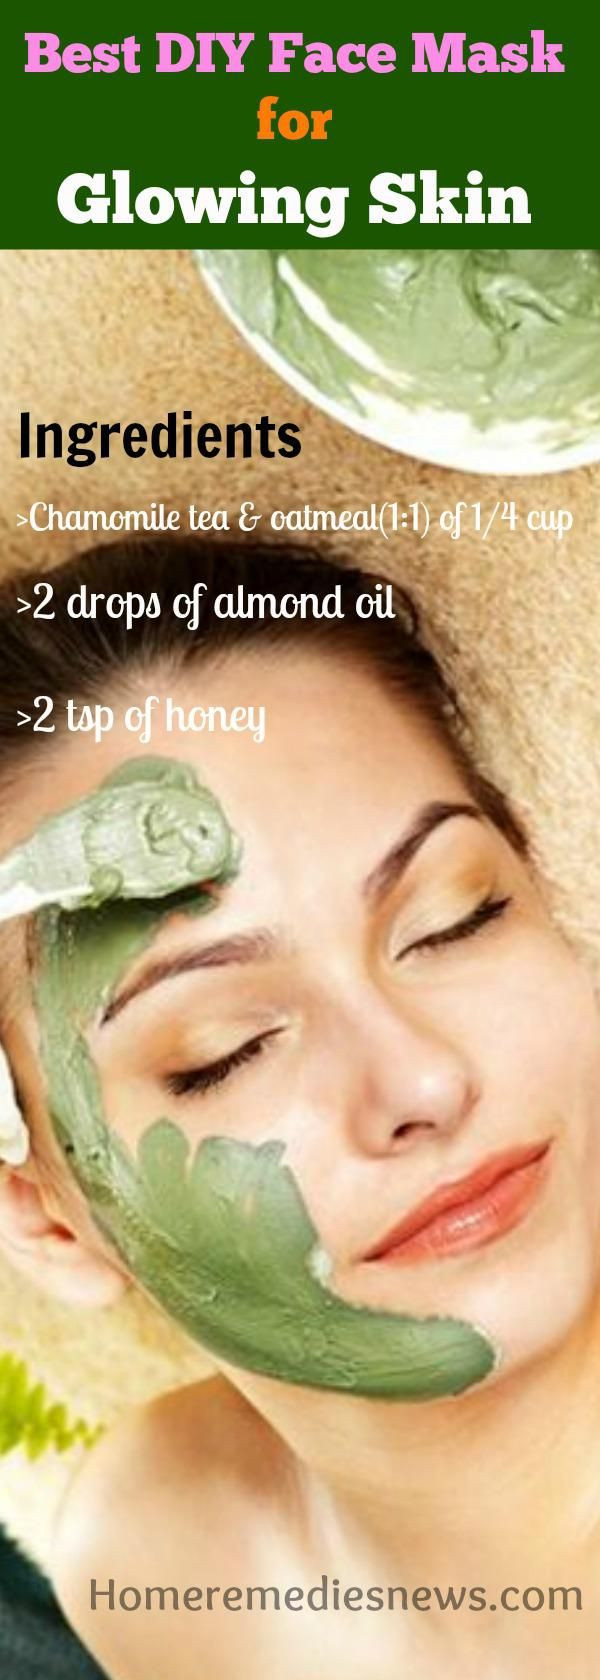 Best ideas about DIY Face Mask For Acne Scars . Save or Pin Best 25 Acne scars ideas only on Pinterest Now.